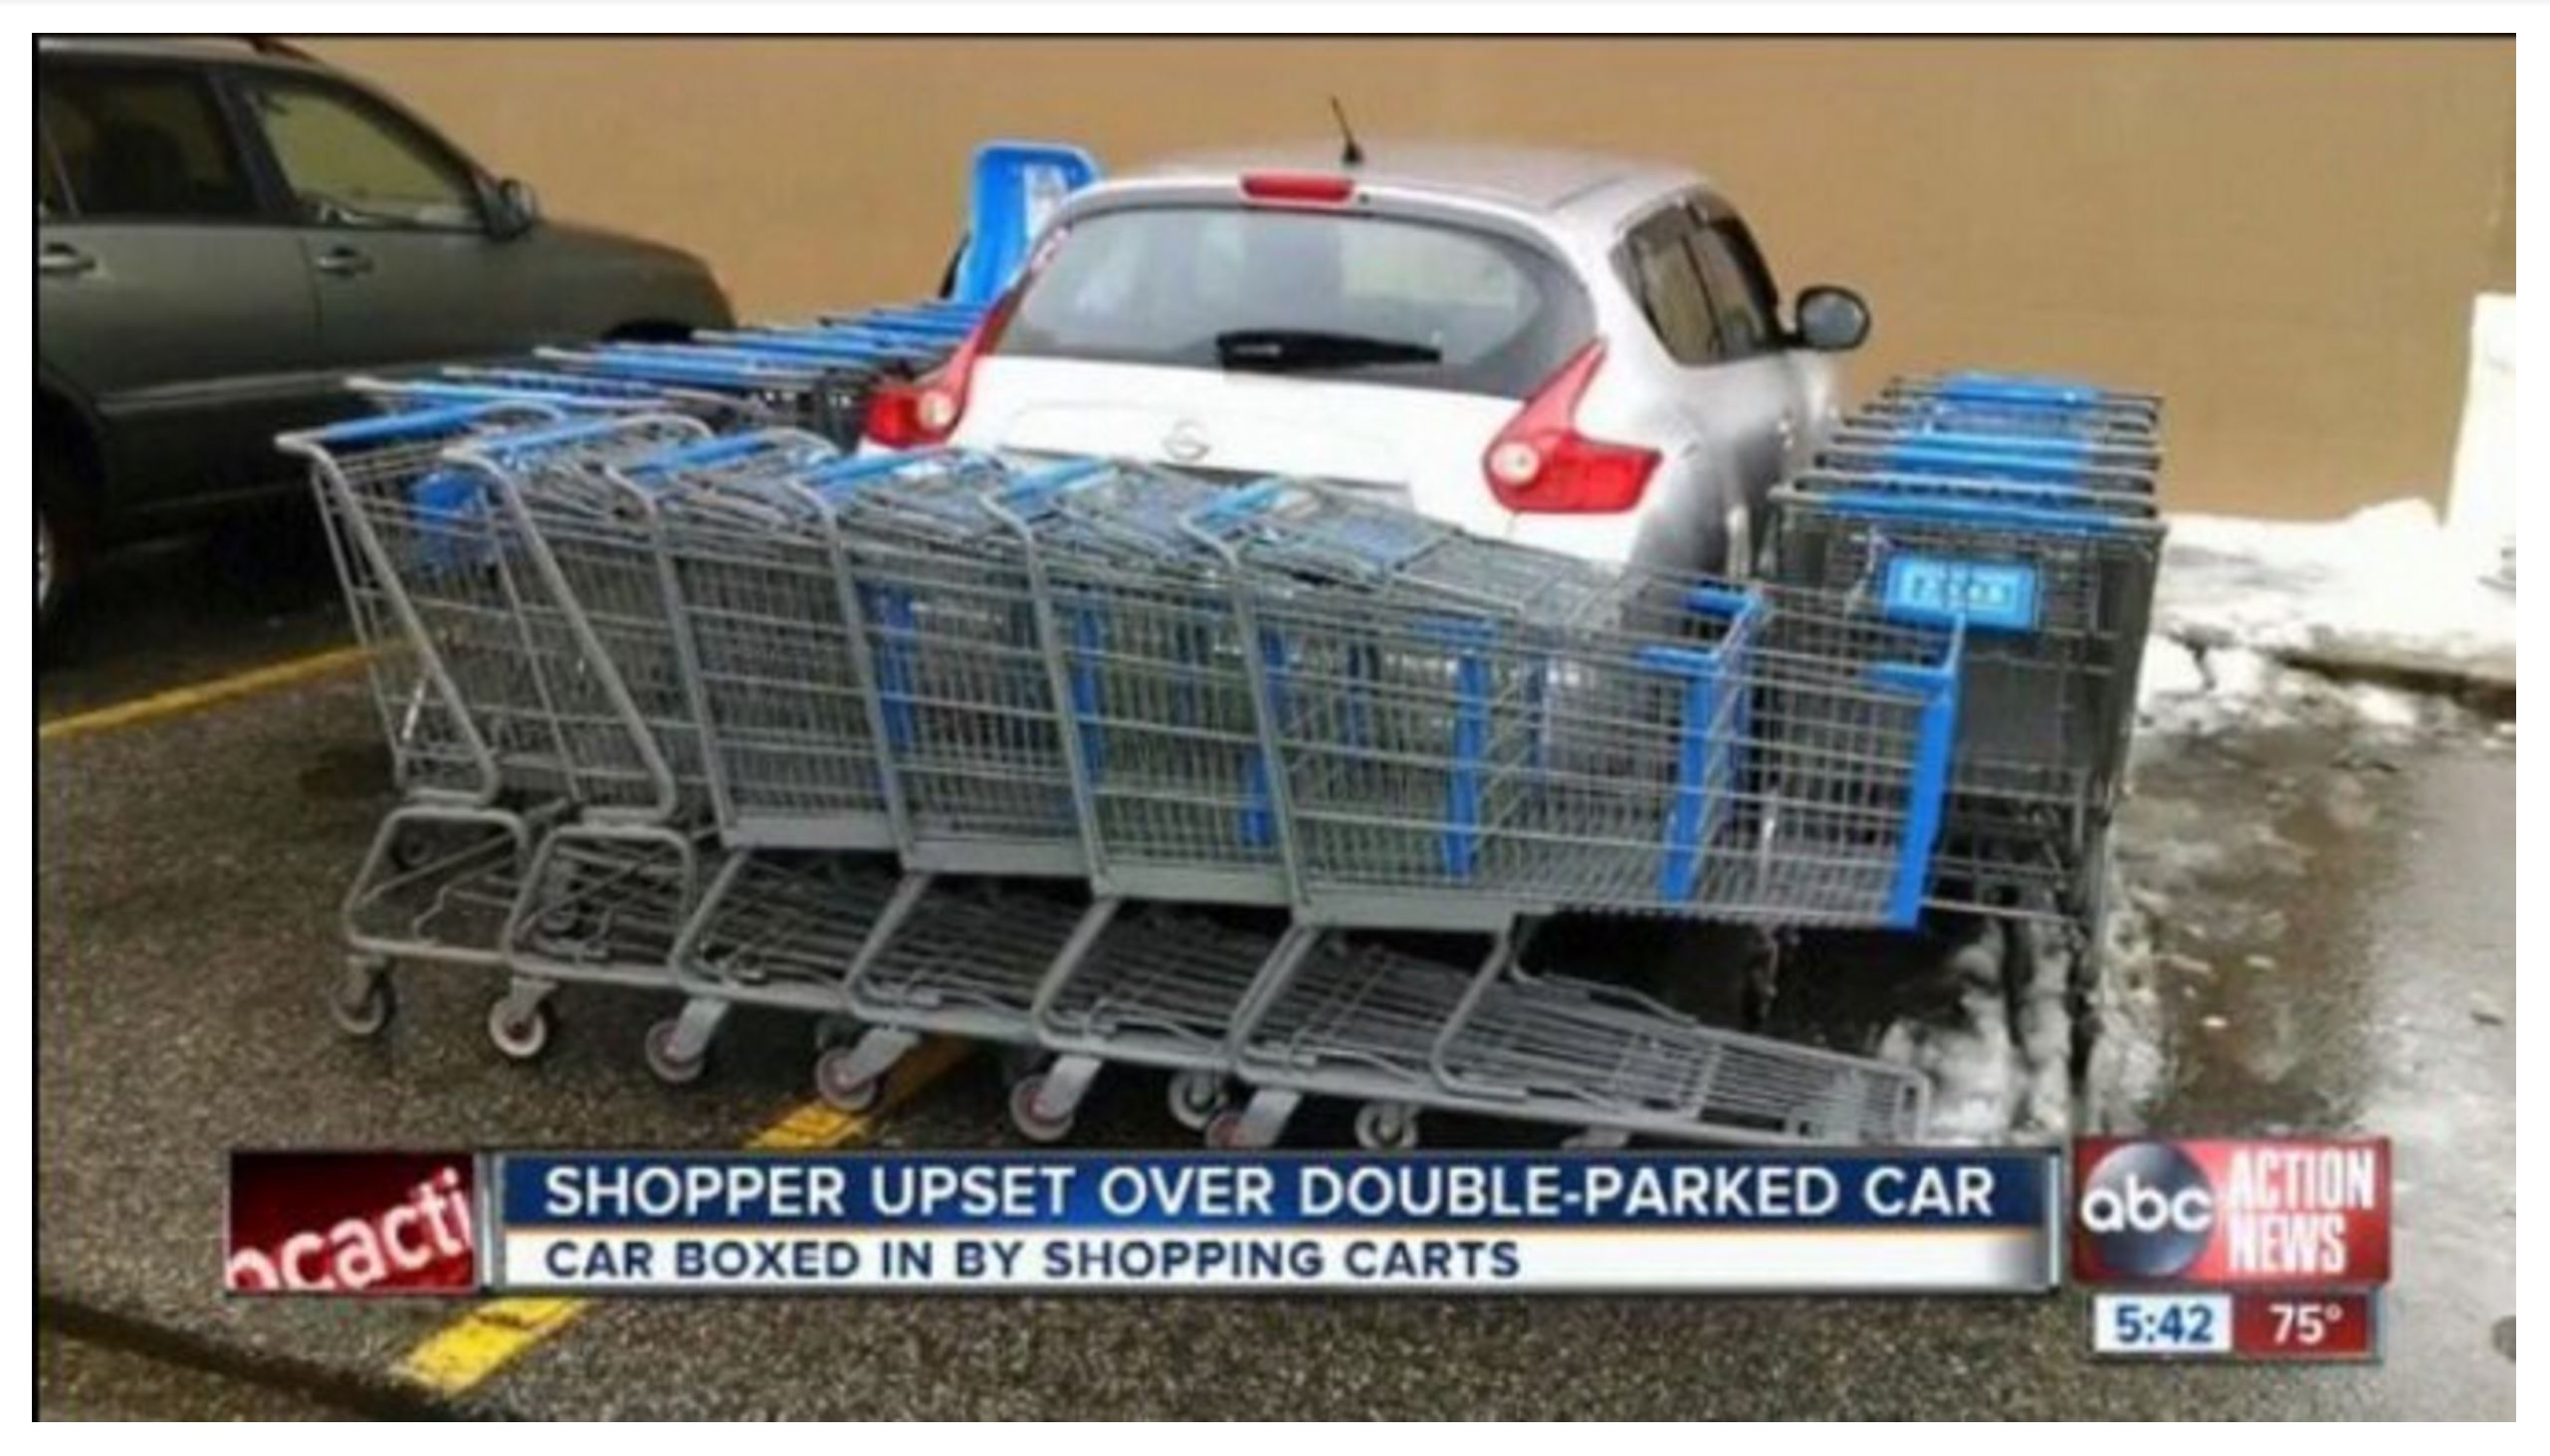 Car taking up two spaces in parking lot surrounded by shopping carts in apparent protest to bad parking